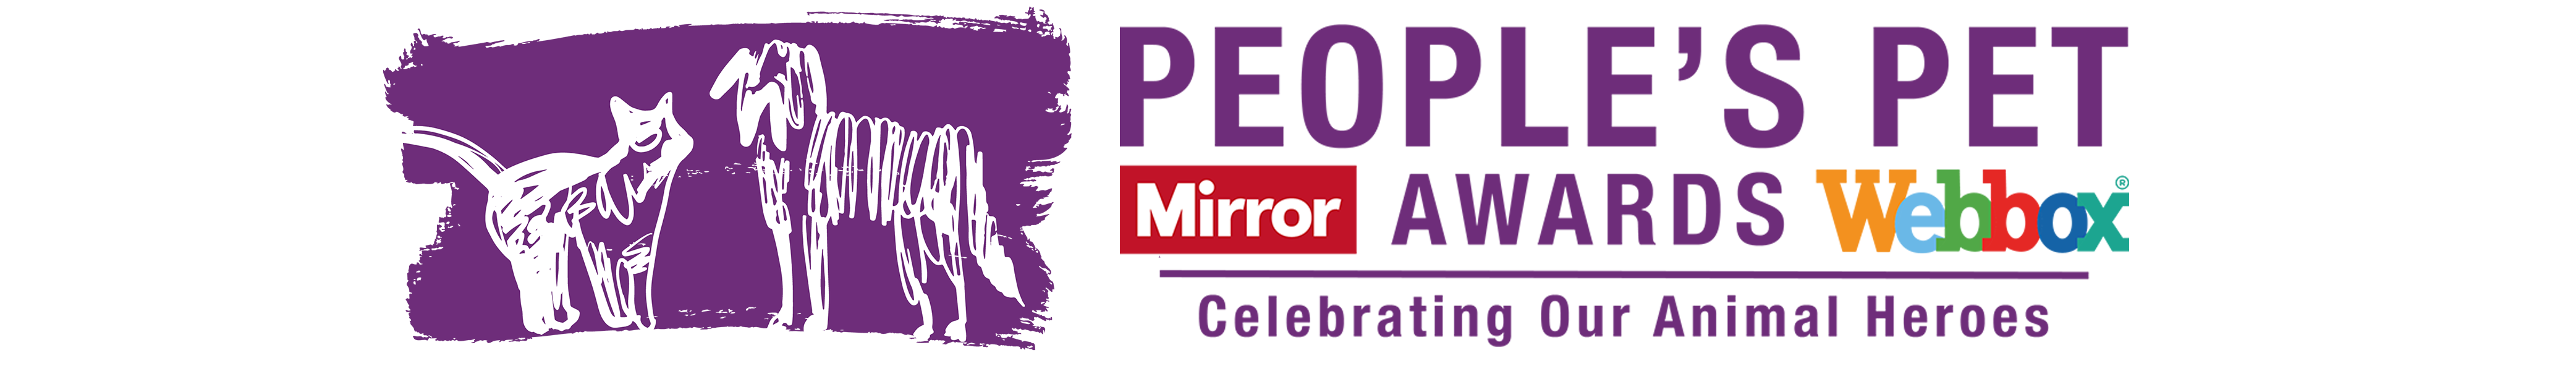 The Peoples Pet Awards